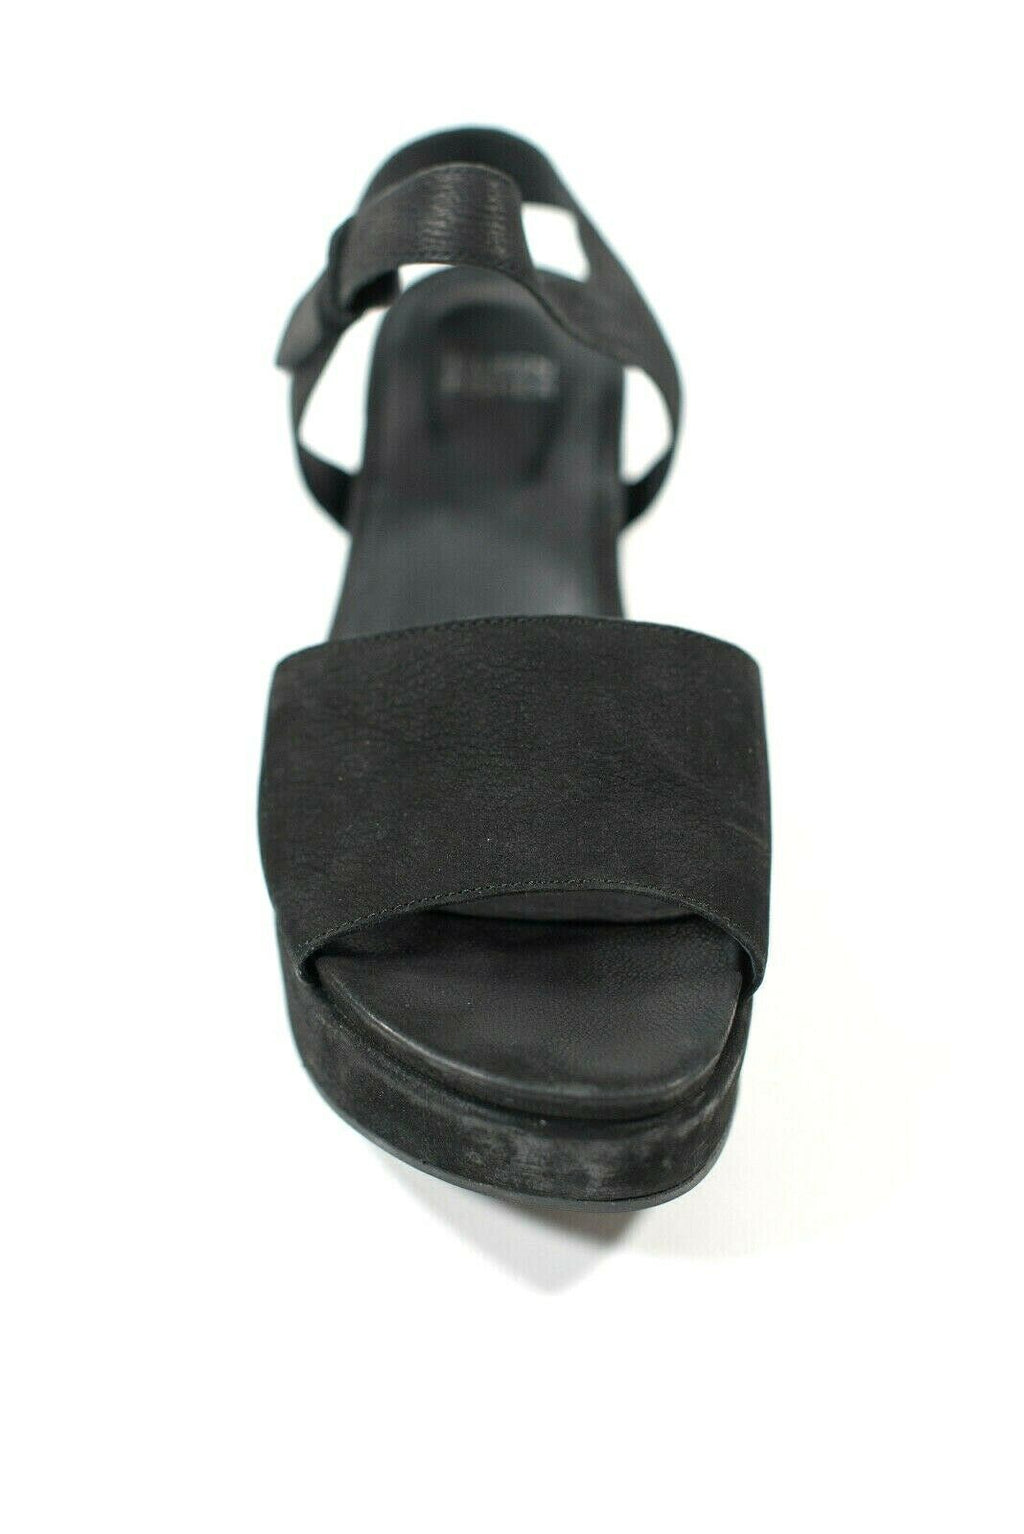 Eileen Fisher Womens Size 8.5 Black Sandals Jasper Ankle Strap Open Toe Platform